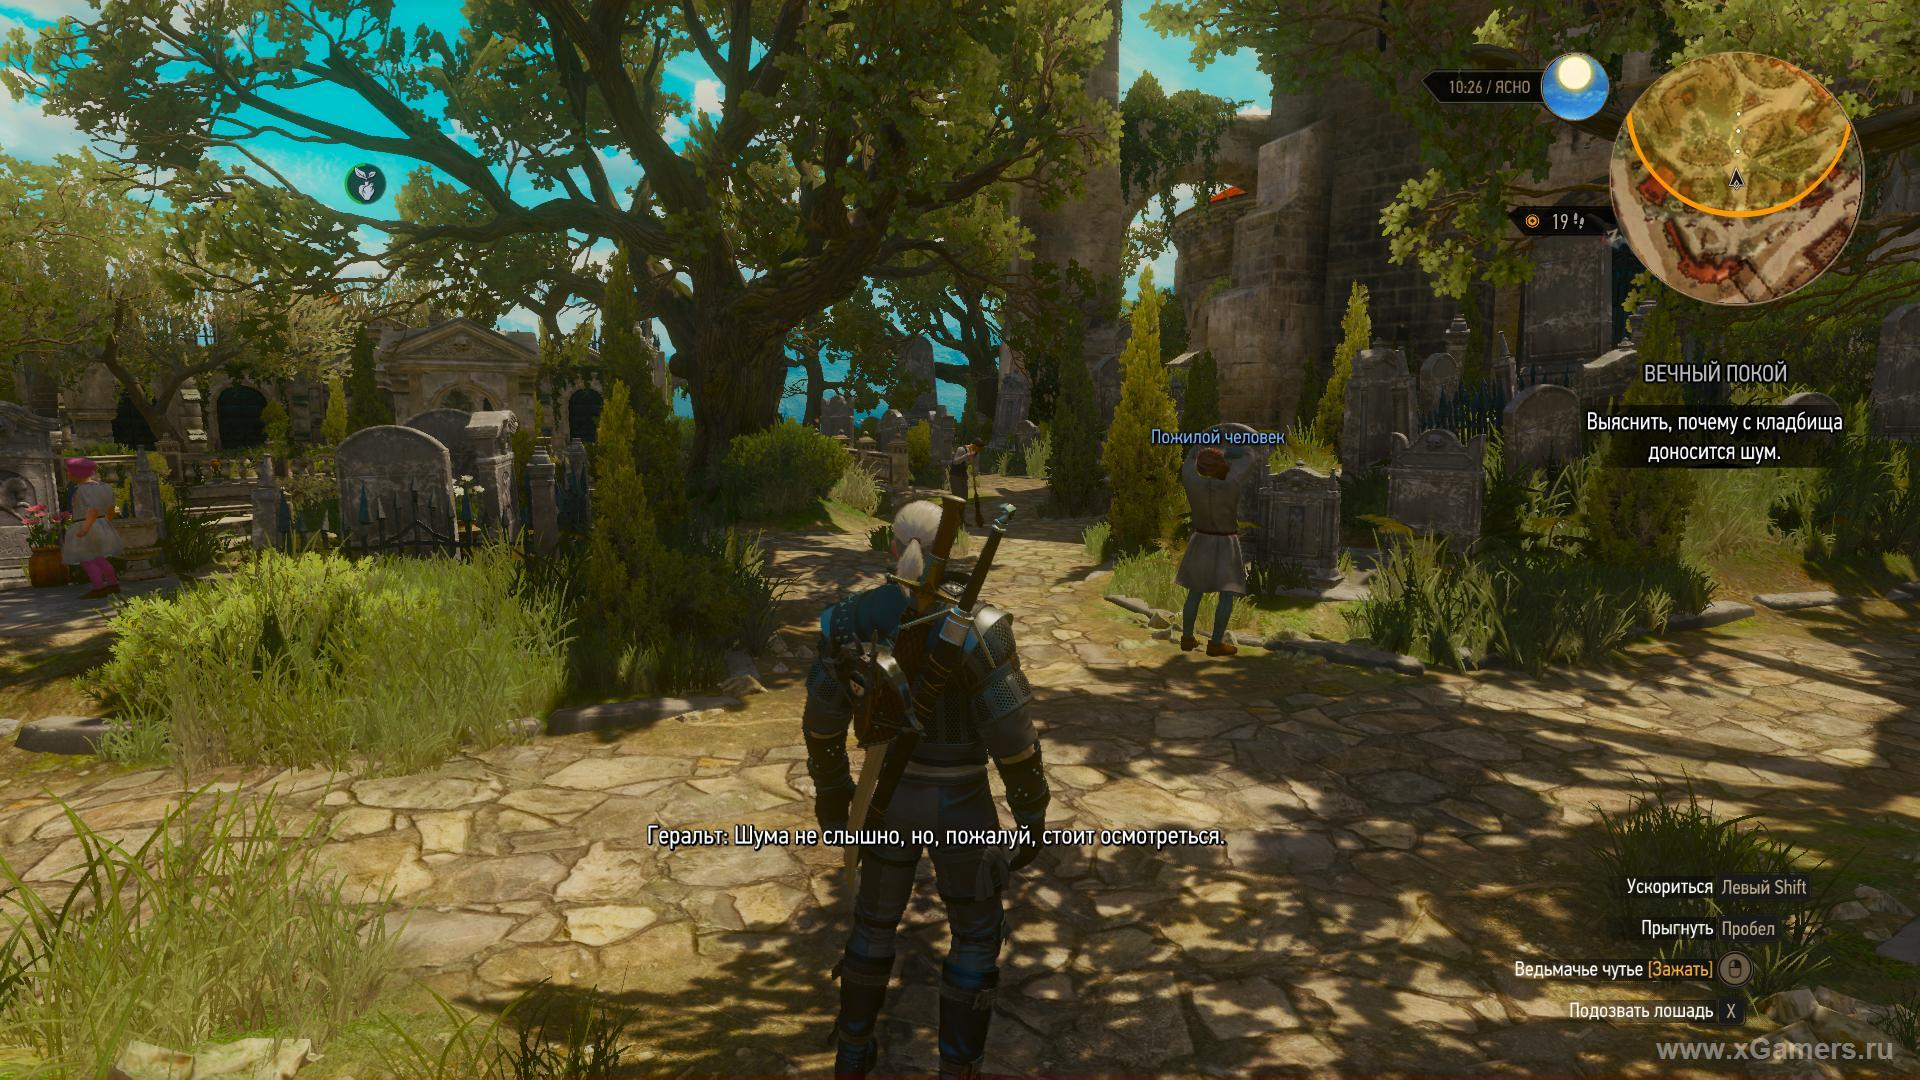 Passage of quest Till Death Do You Part in the game The Witcher 3